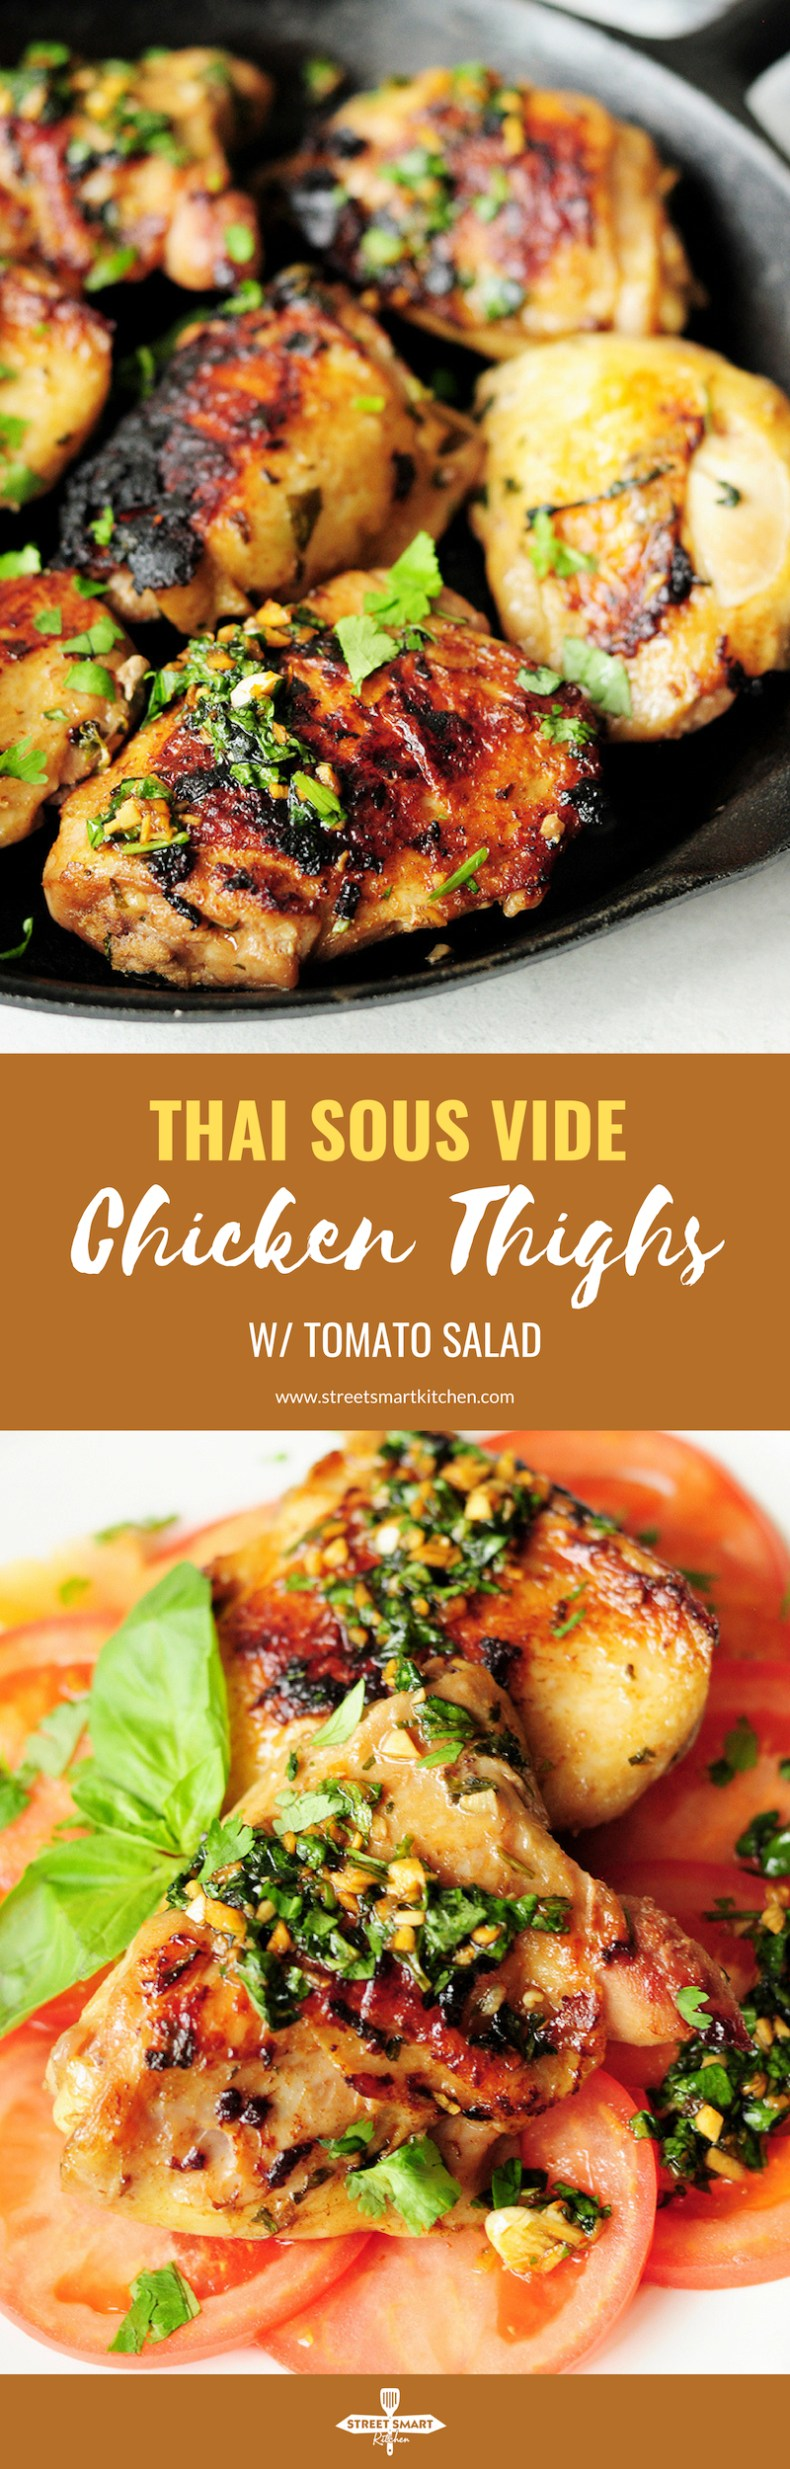 Chicken thighs marinated in a Thai sauce, and sous vide to perfection, then seared to be crispy outside. They are served over a tasty tomato salad to complete a low-carb and delicious meal.